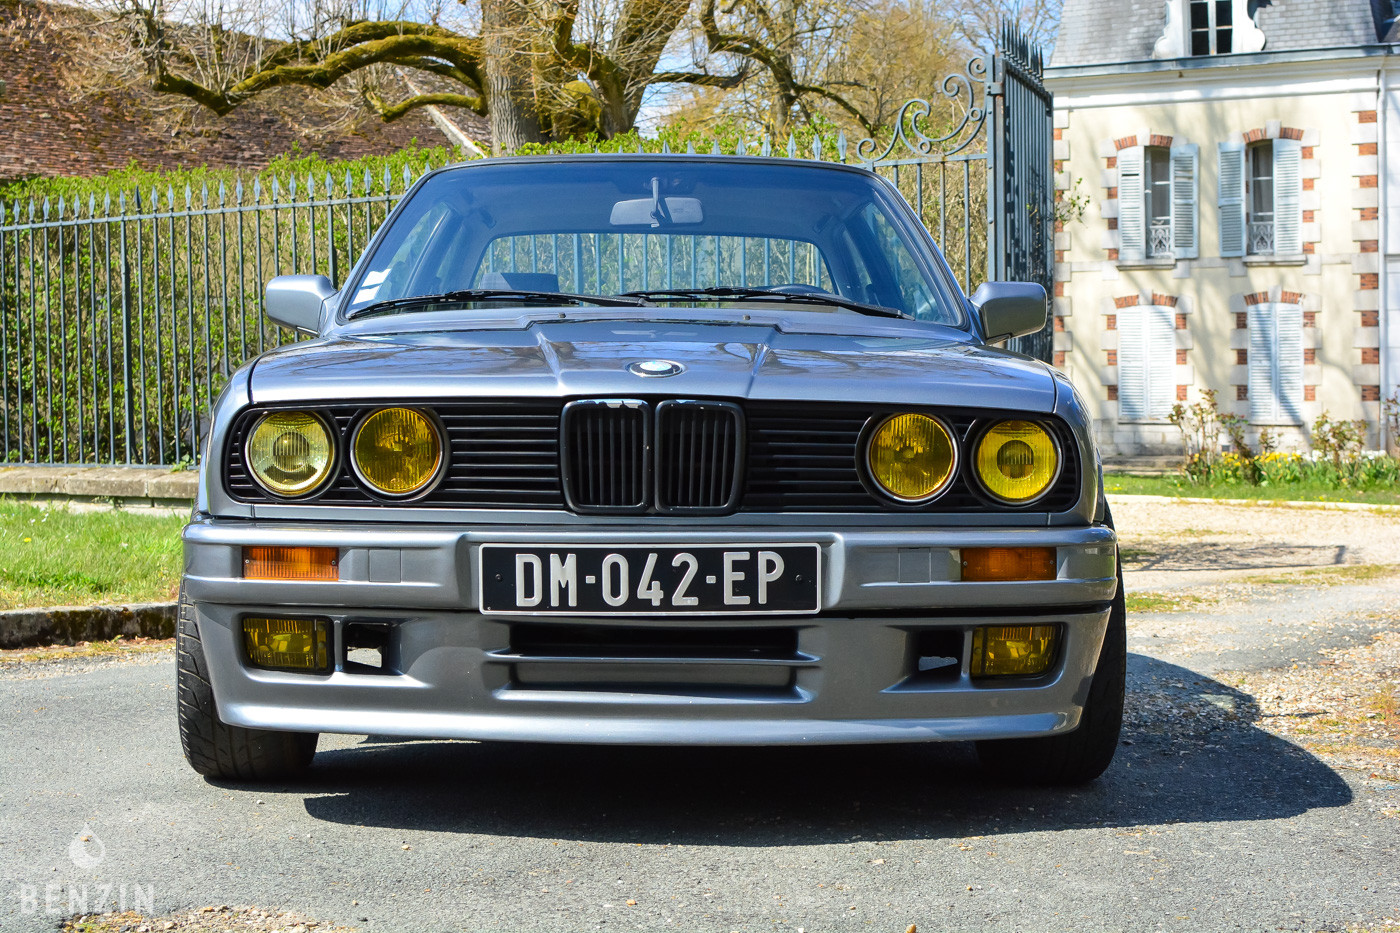 BMW 325IX E30 MTECH OCCASION A VENDRE FOR SALE ZU VERKAUFEN TE KOOP EN VENTA IN VENDITA - 1988